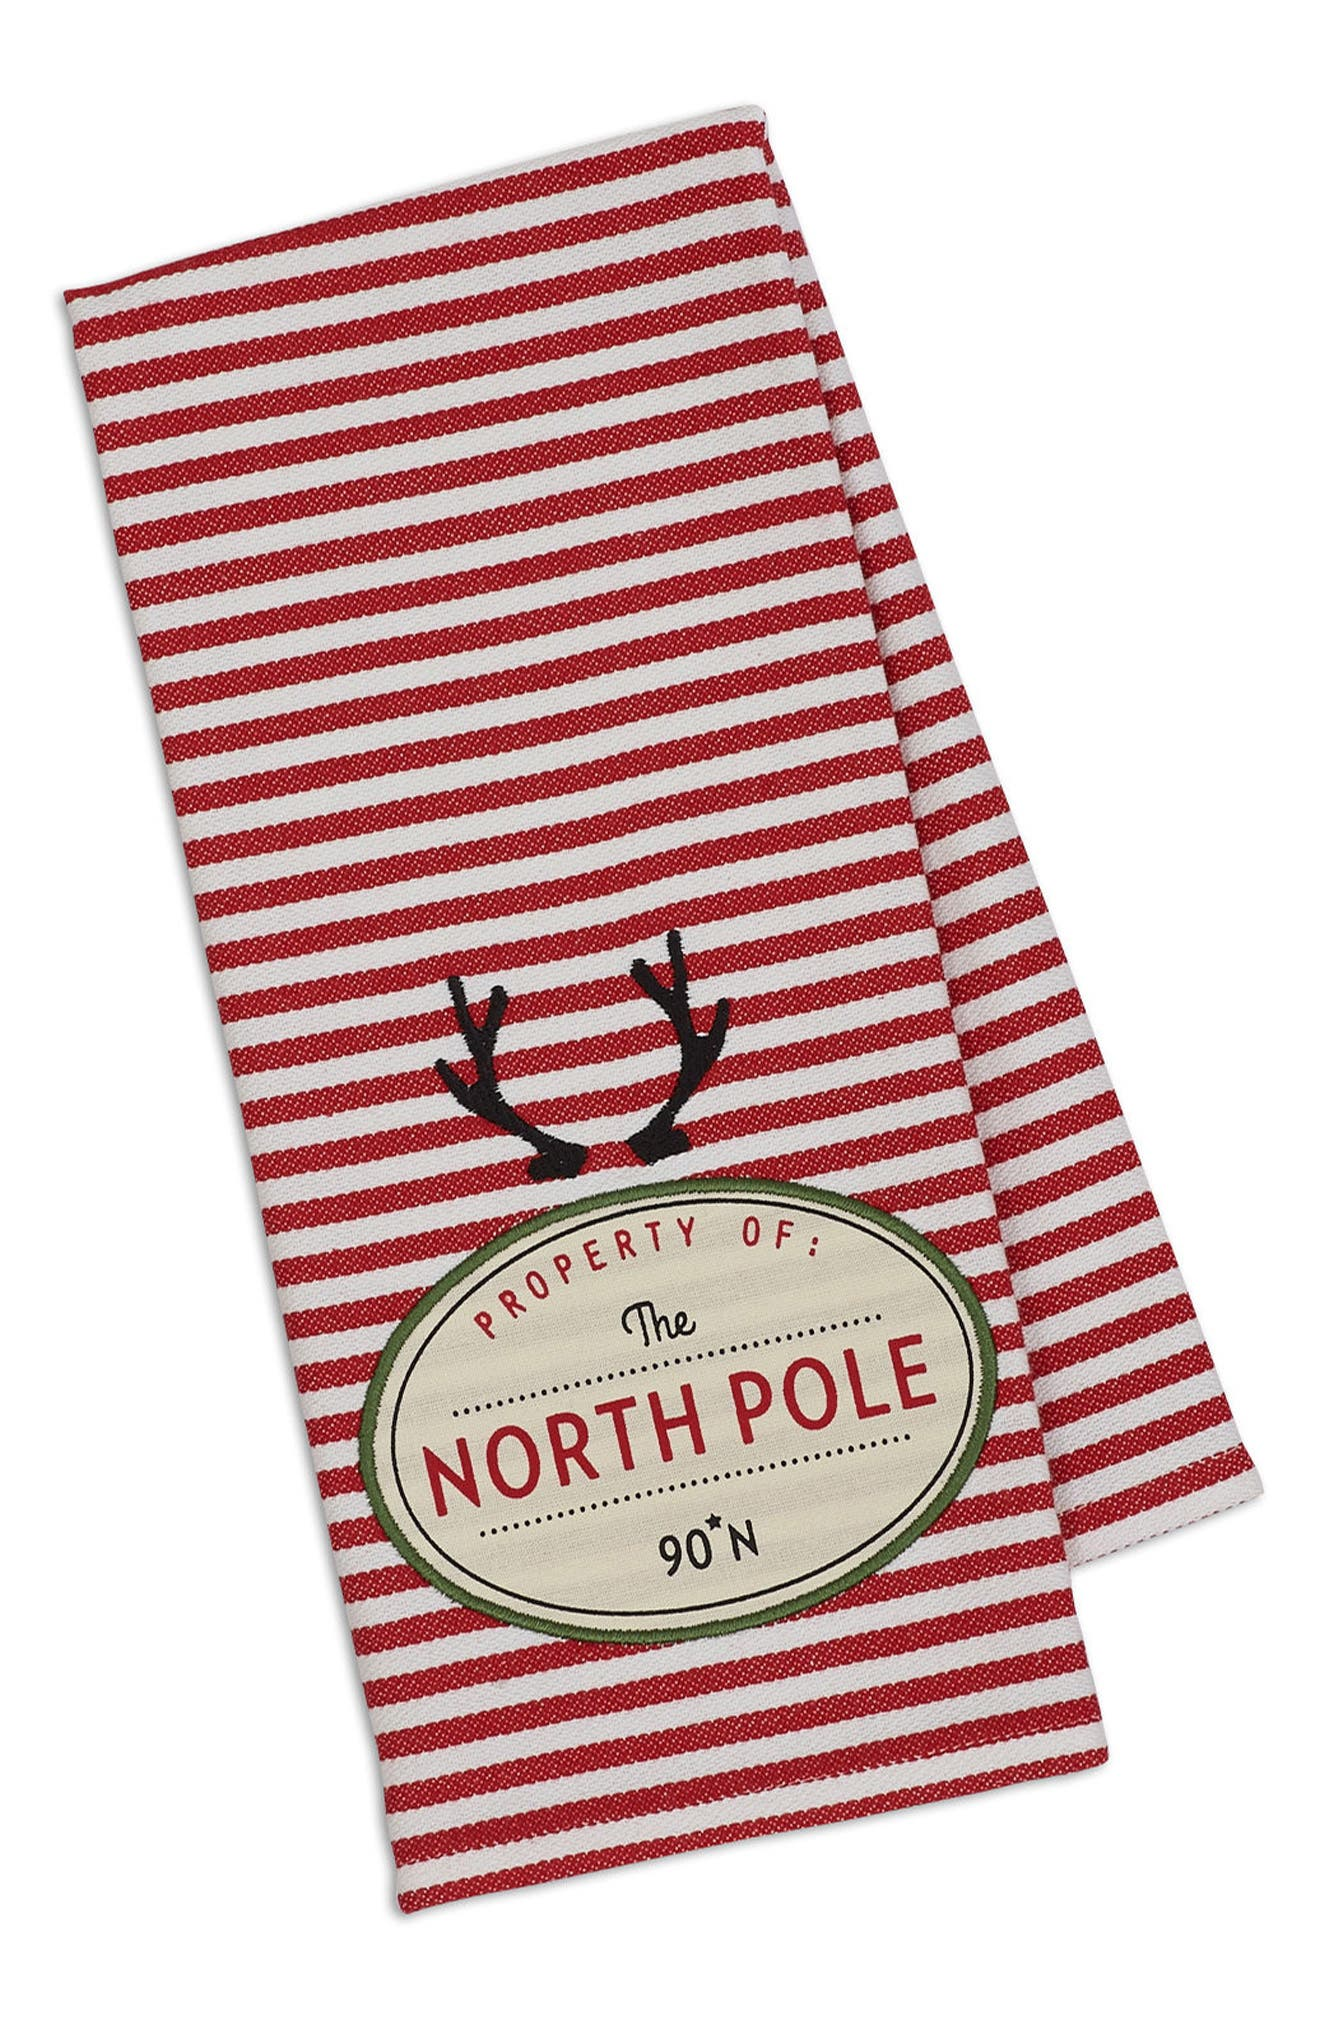 Alternate Image 1 Selected - Design Imports North Pole Dish Towel